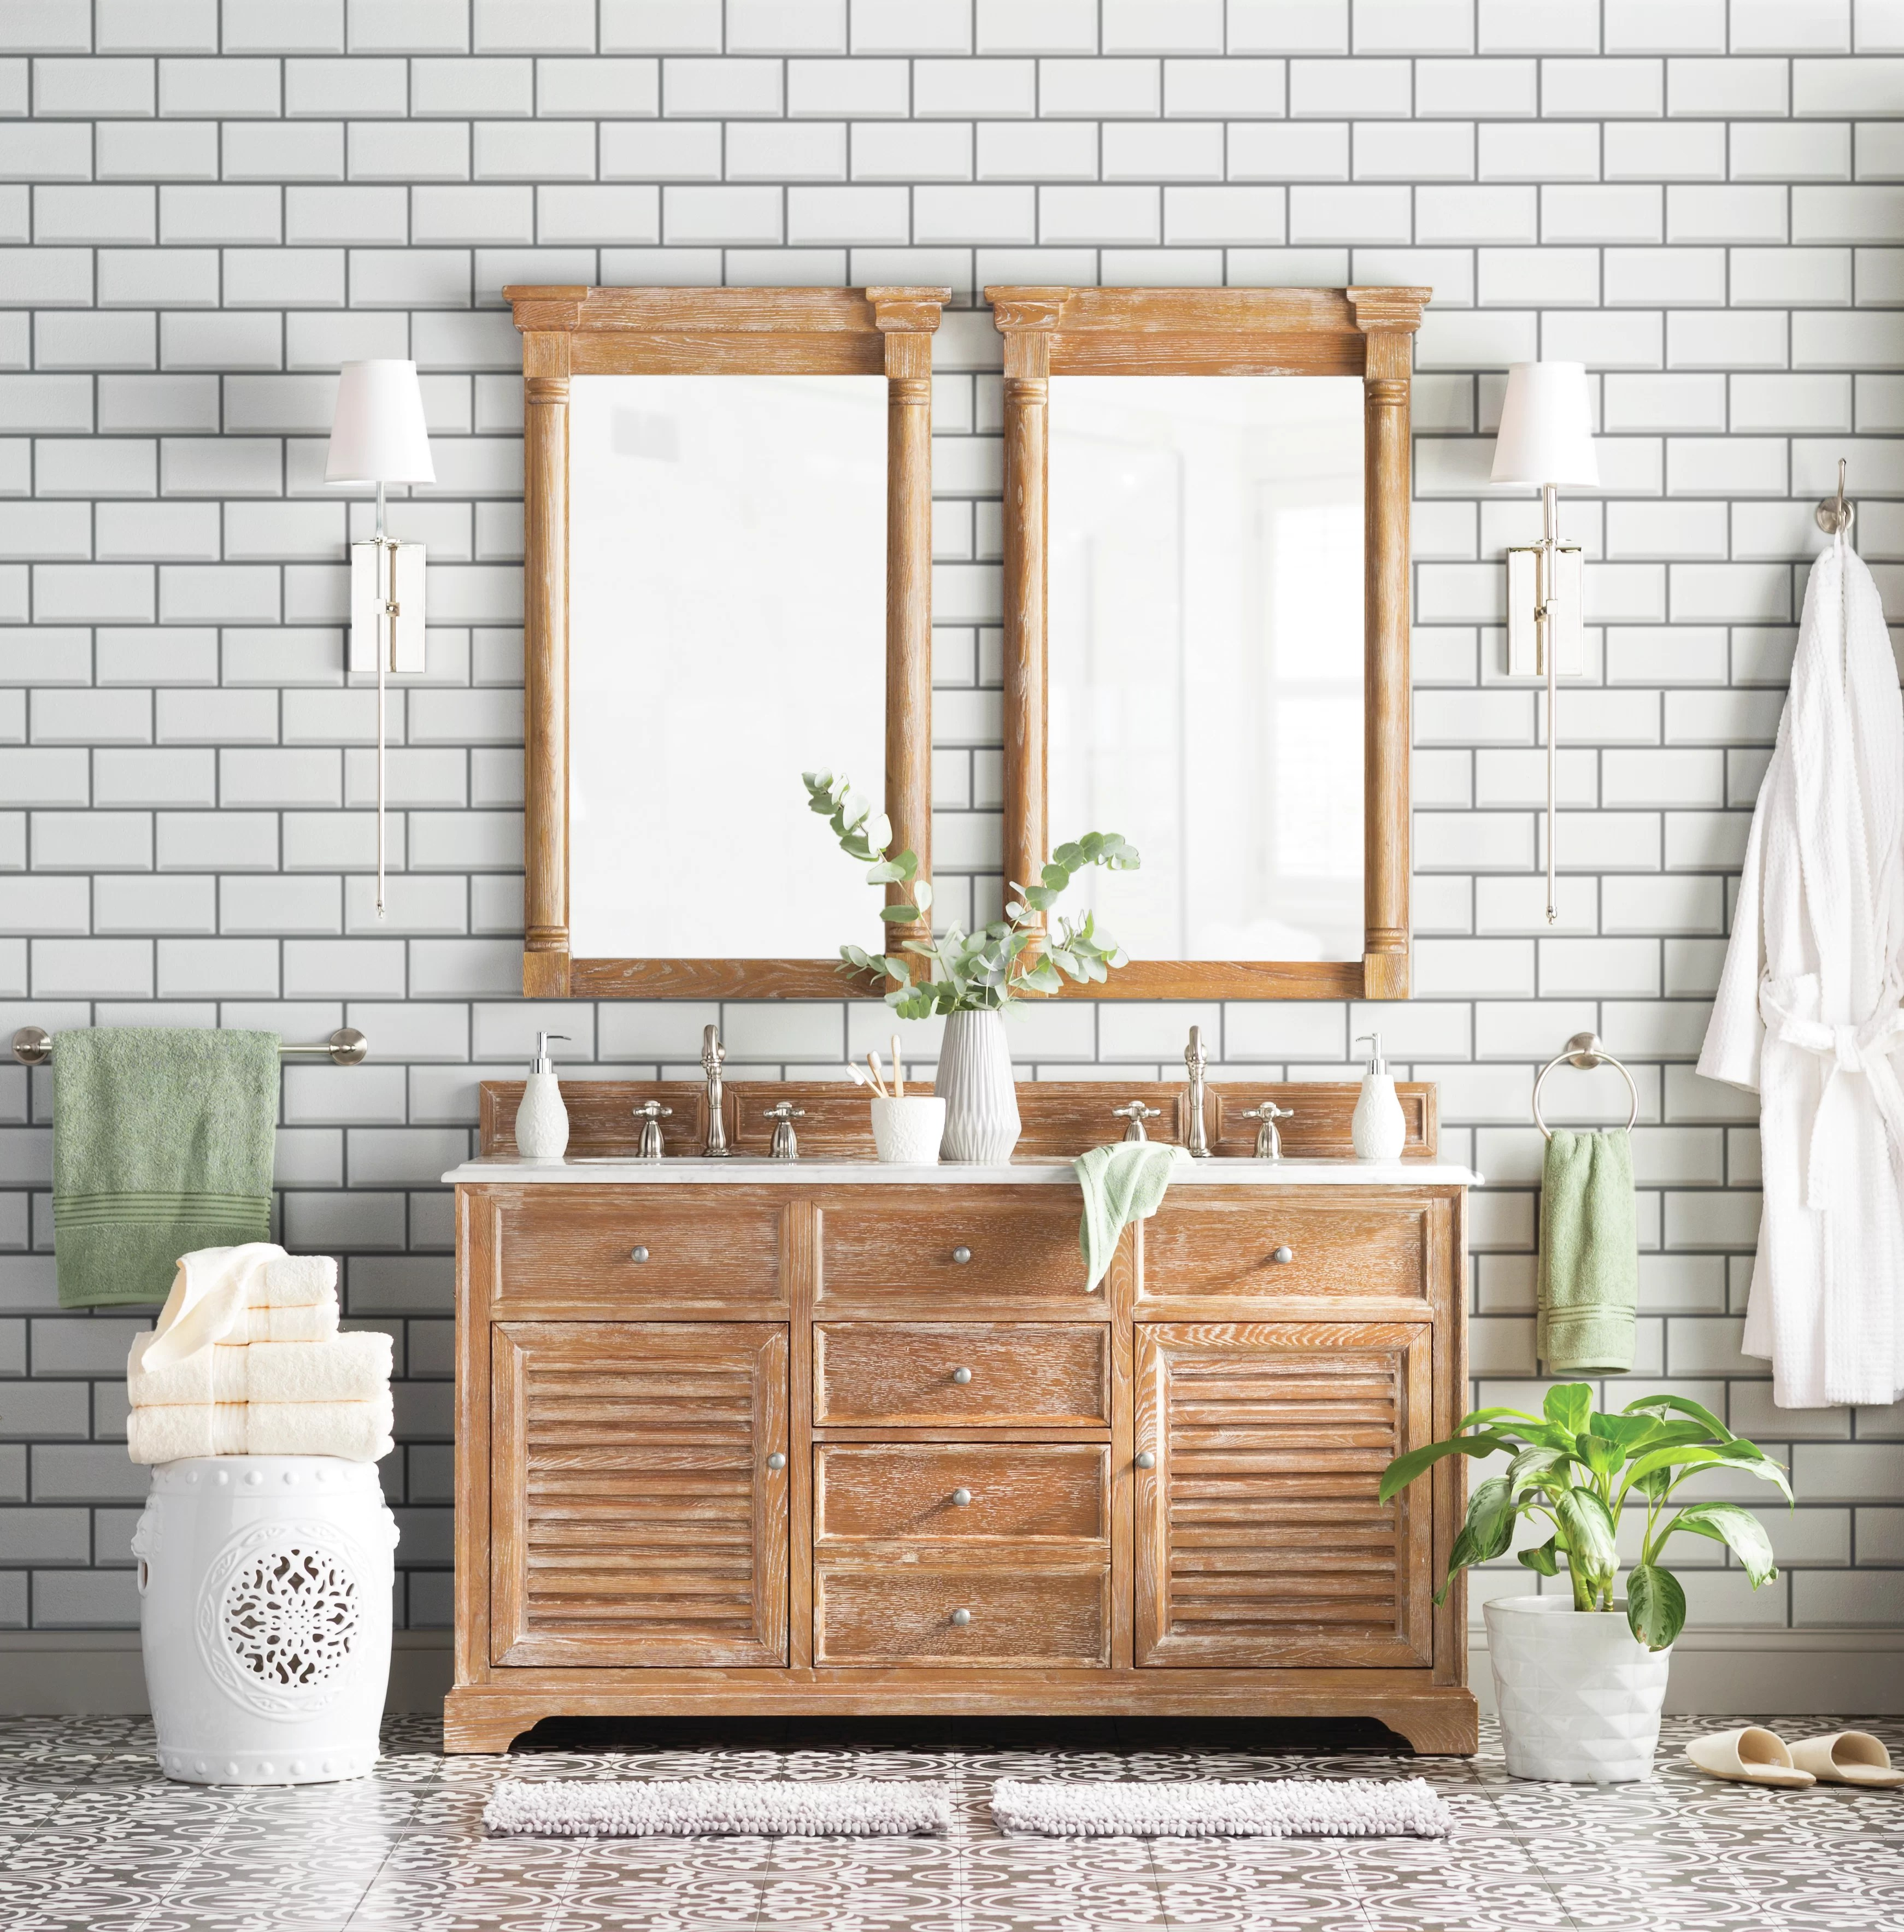 12 Beautiful Bathroom Decor Ideas Wayfair